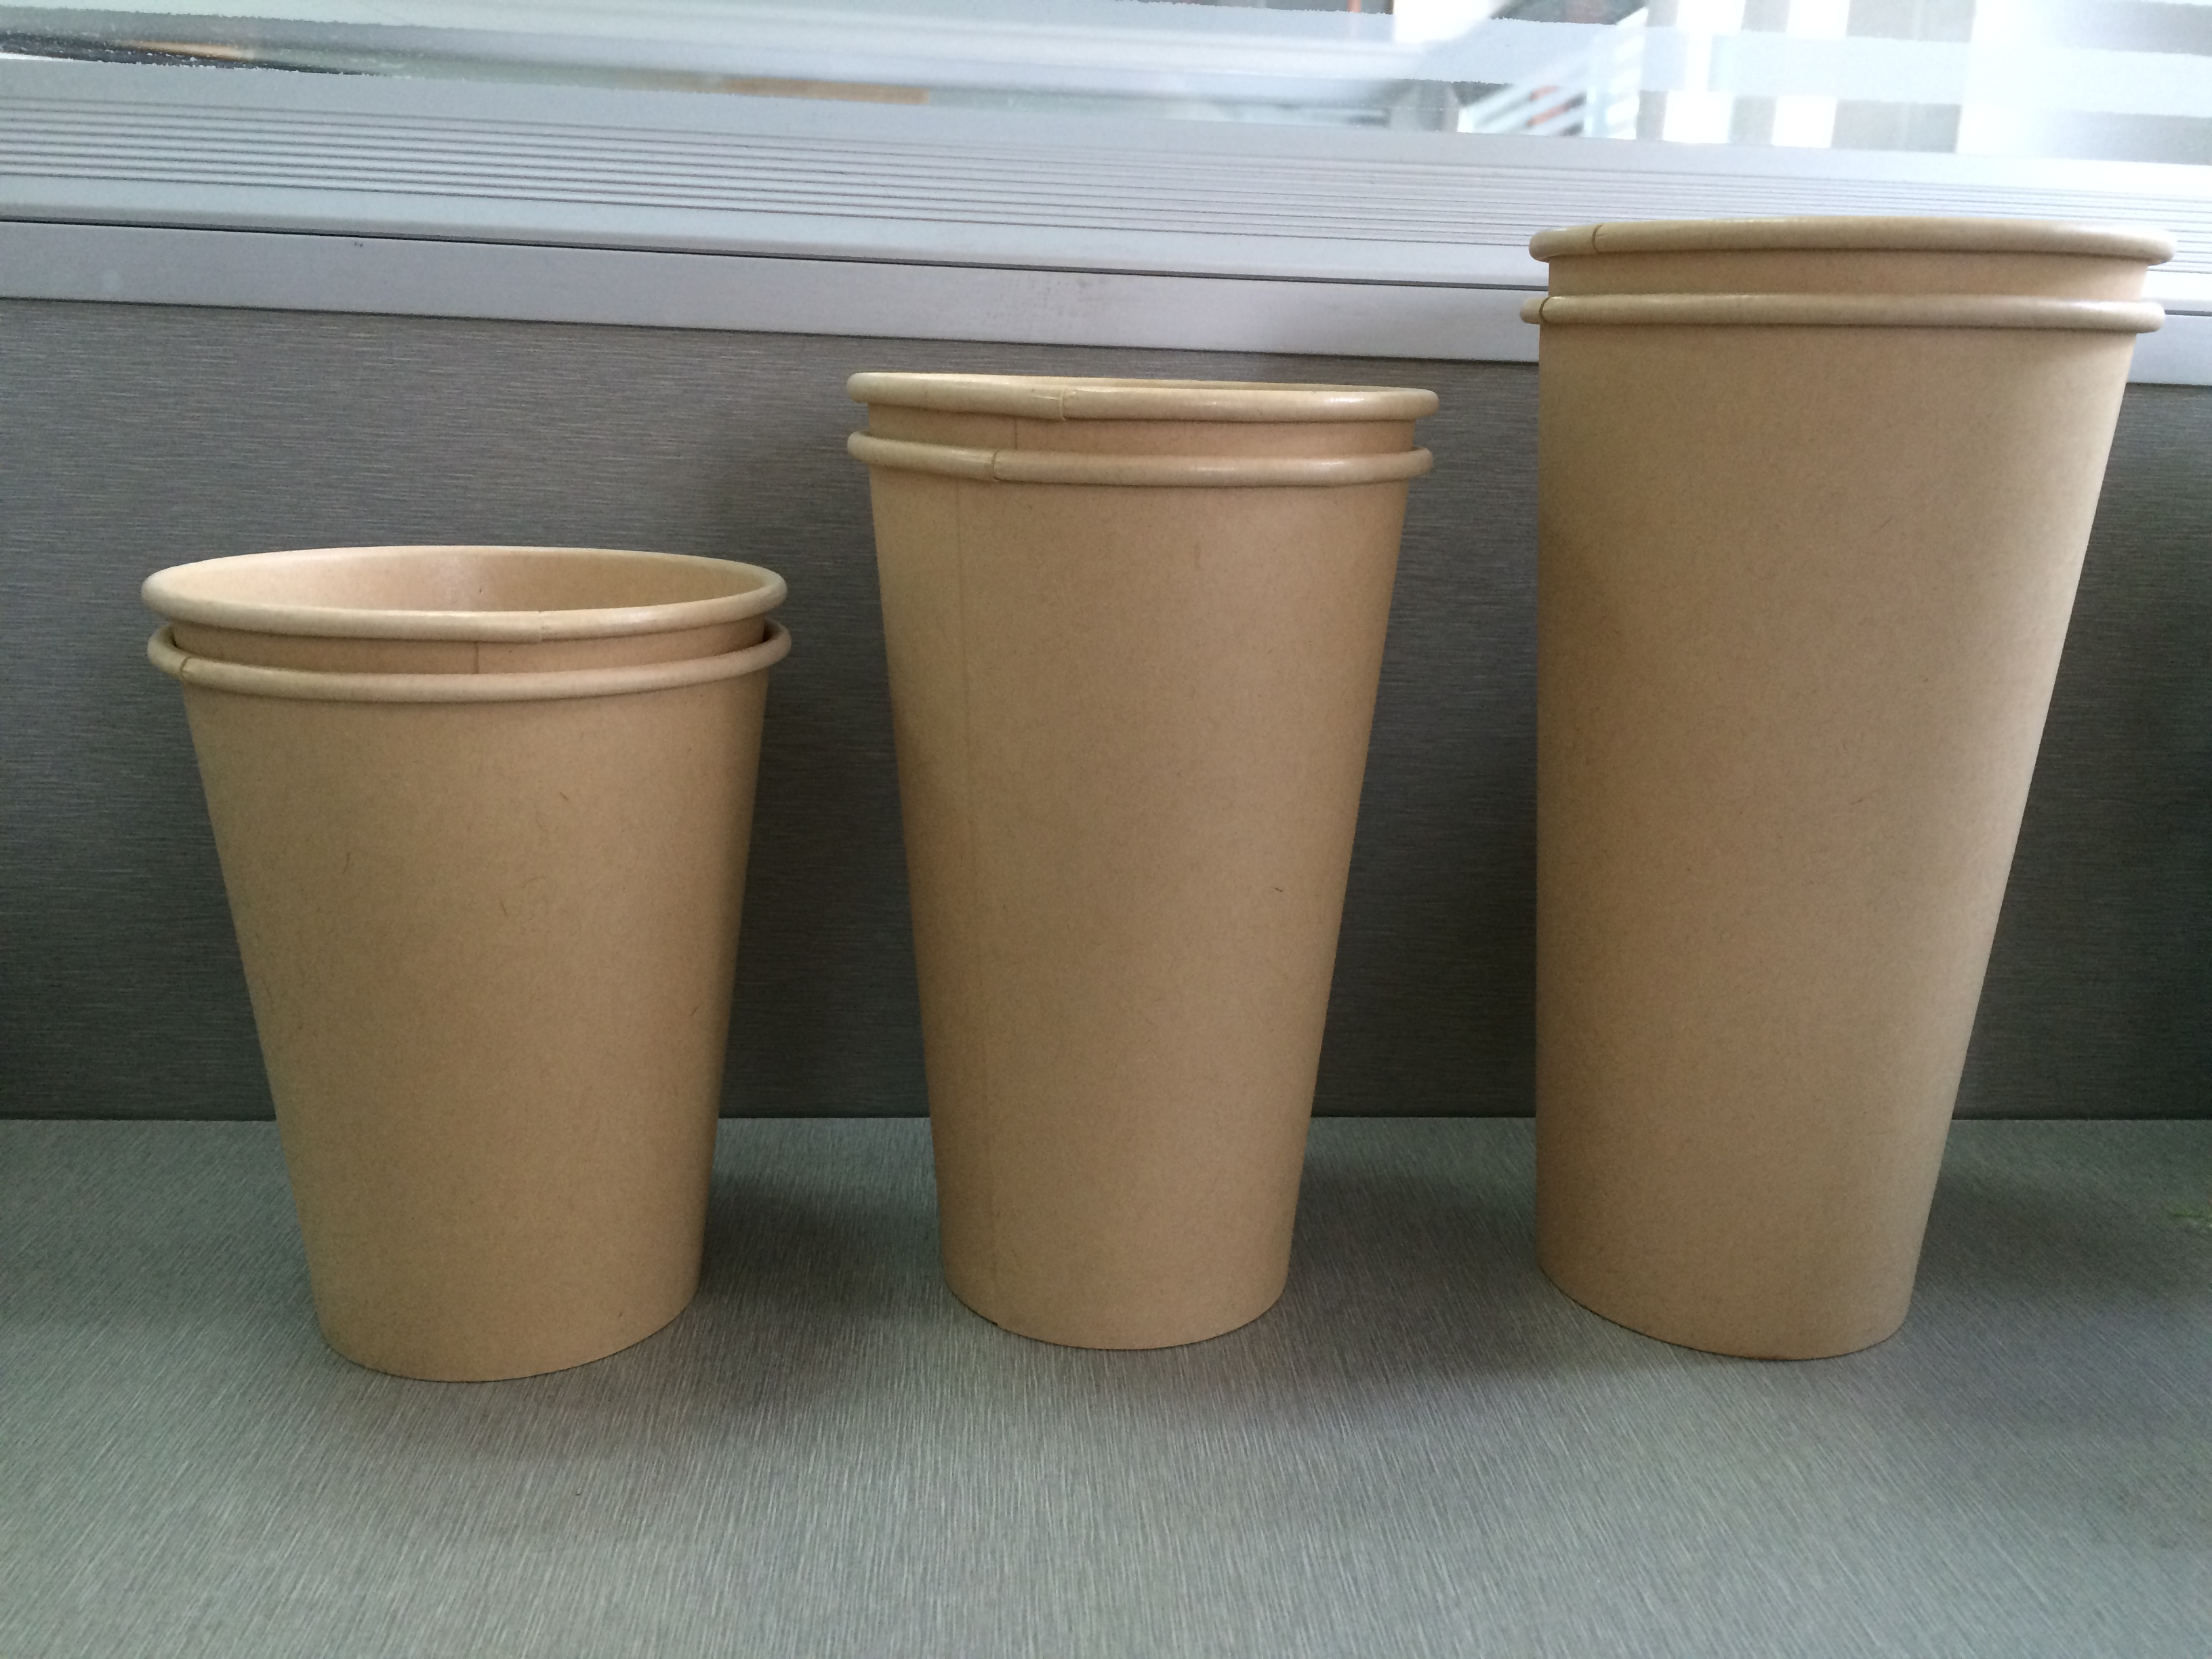 RECYCLABLE PAPR COFFEE CUP WWw.custompapercup.com